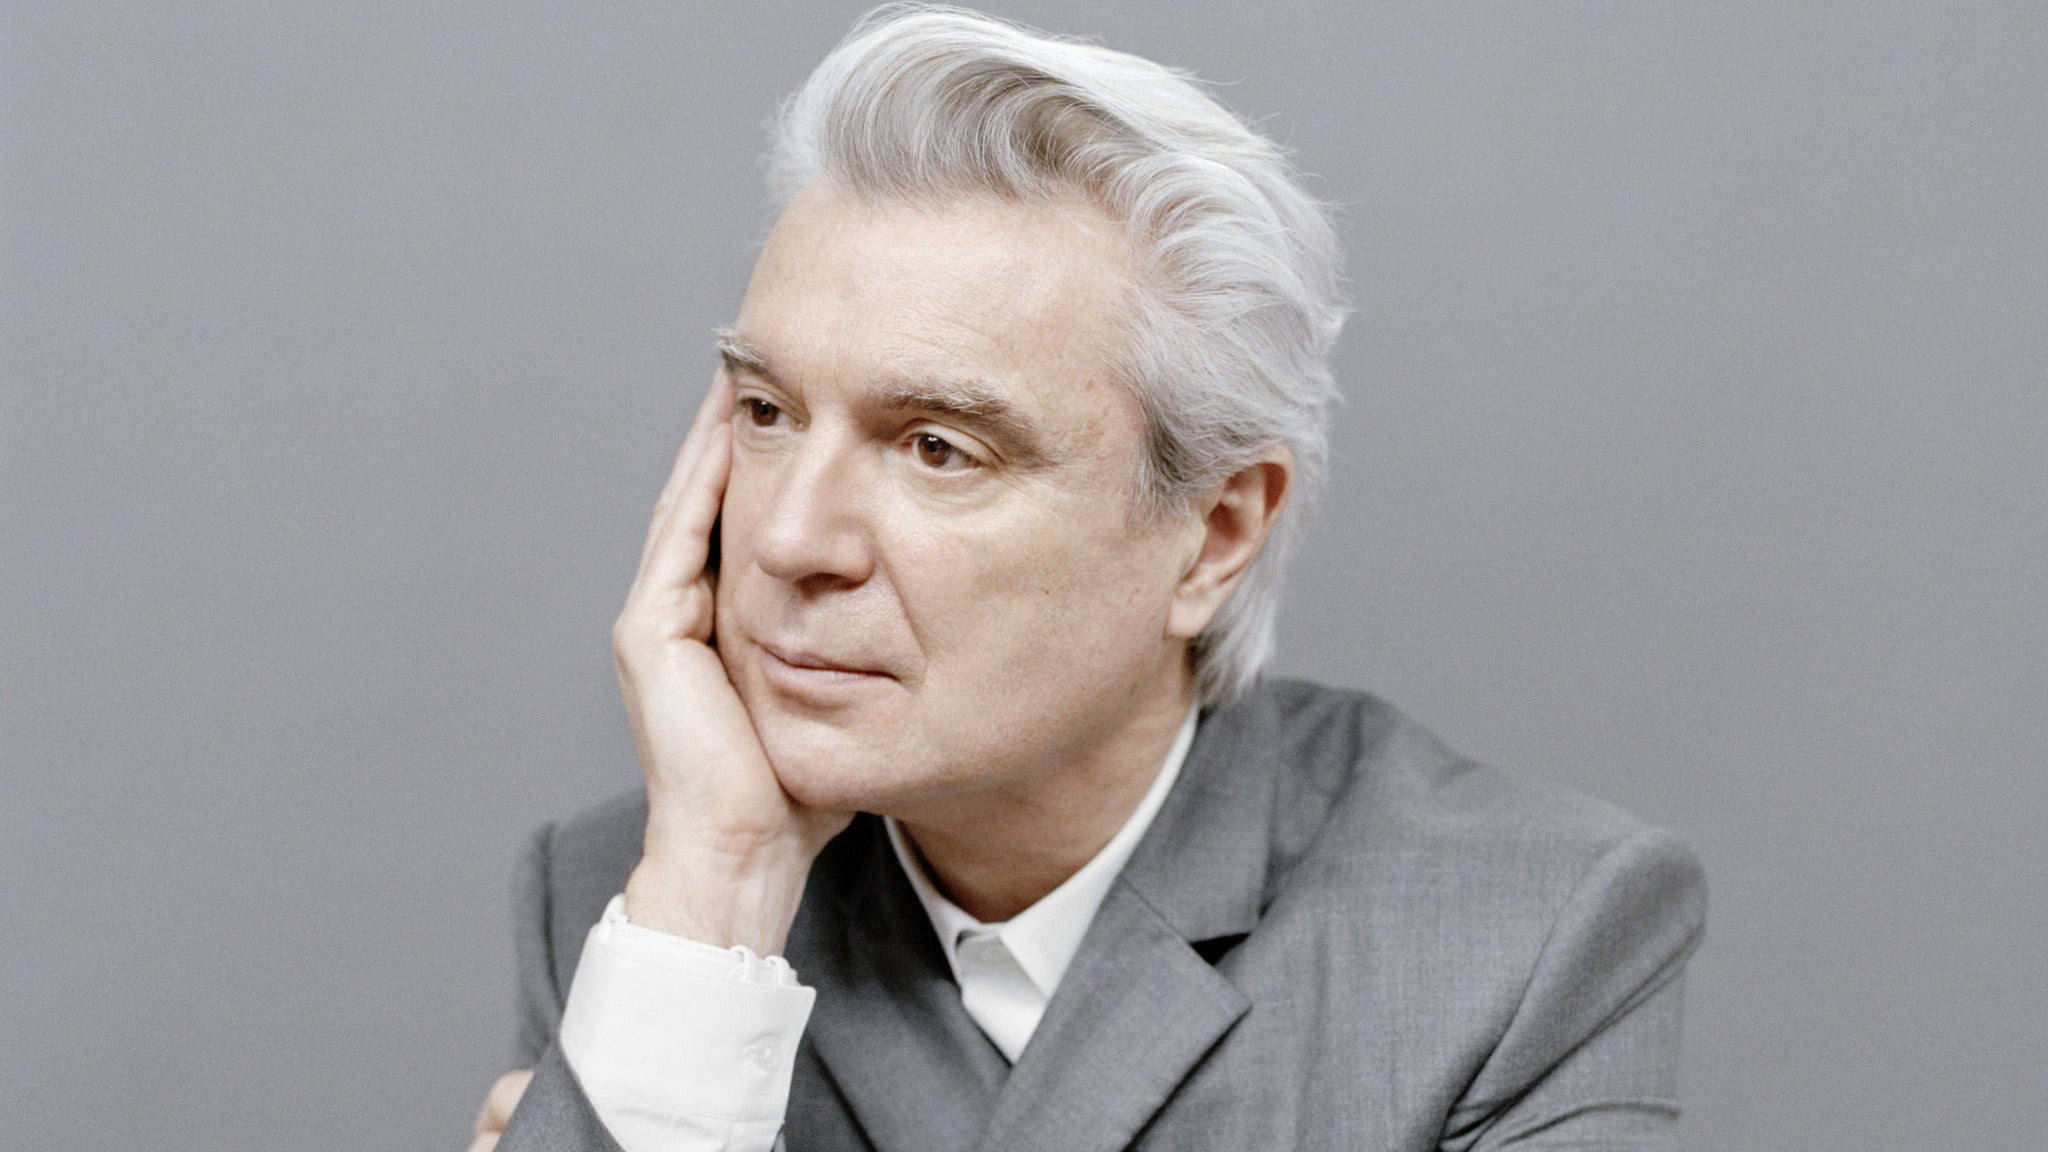 David Byrne: American Utopia Tour at Toyota Oakdale Theatre - Wallingford, CT 06492